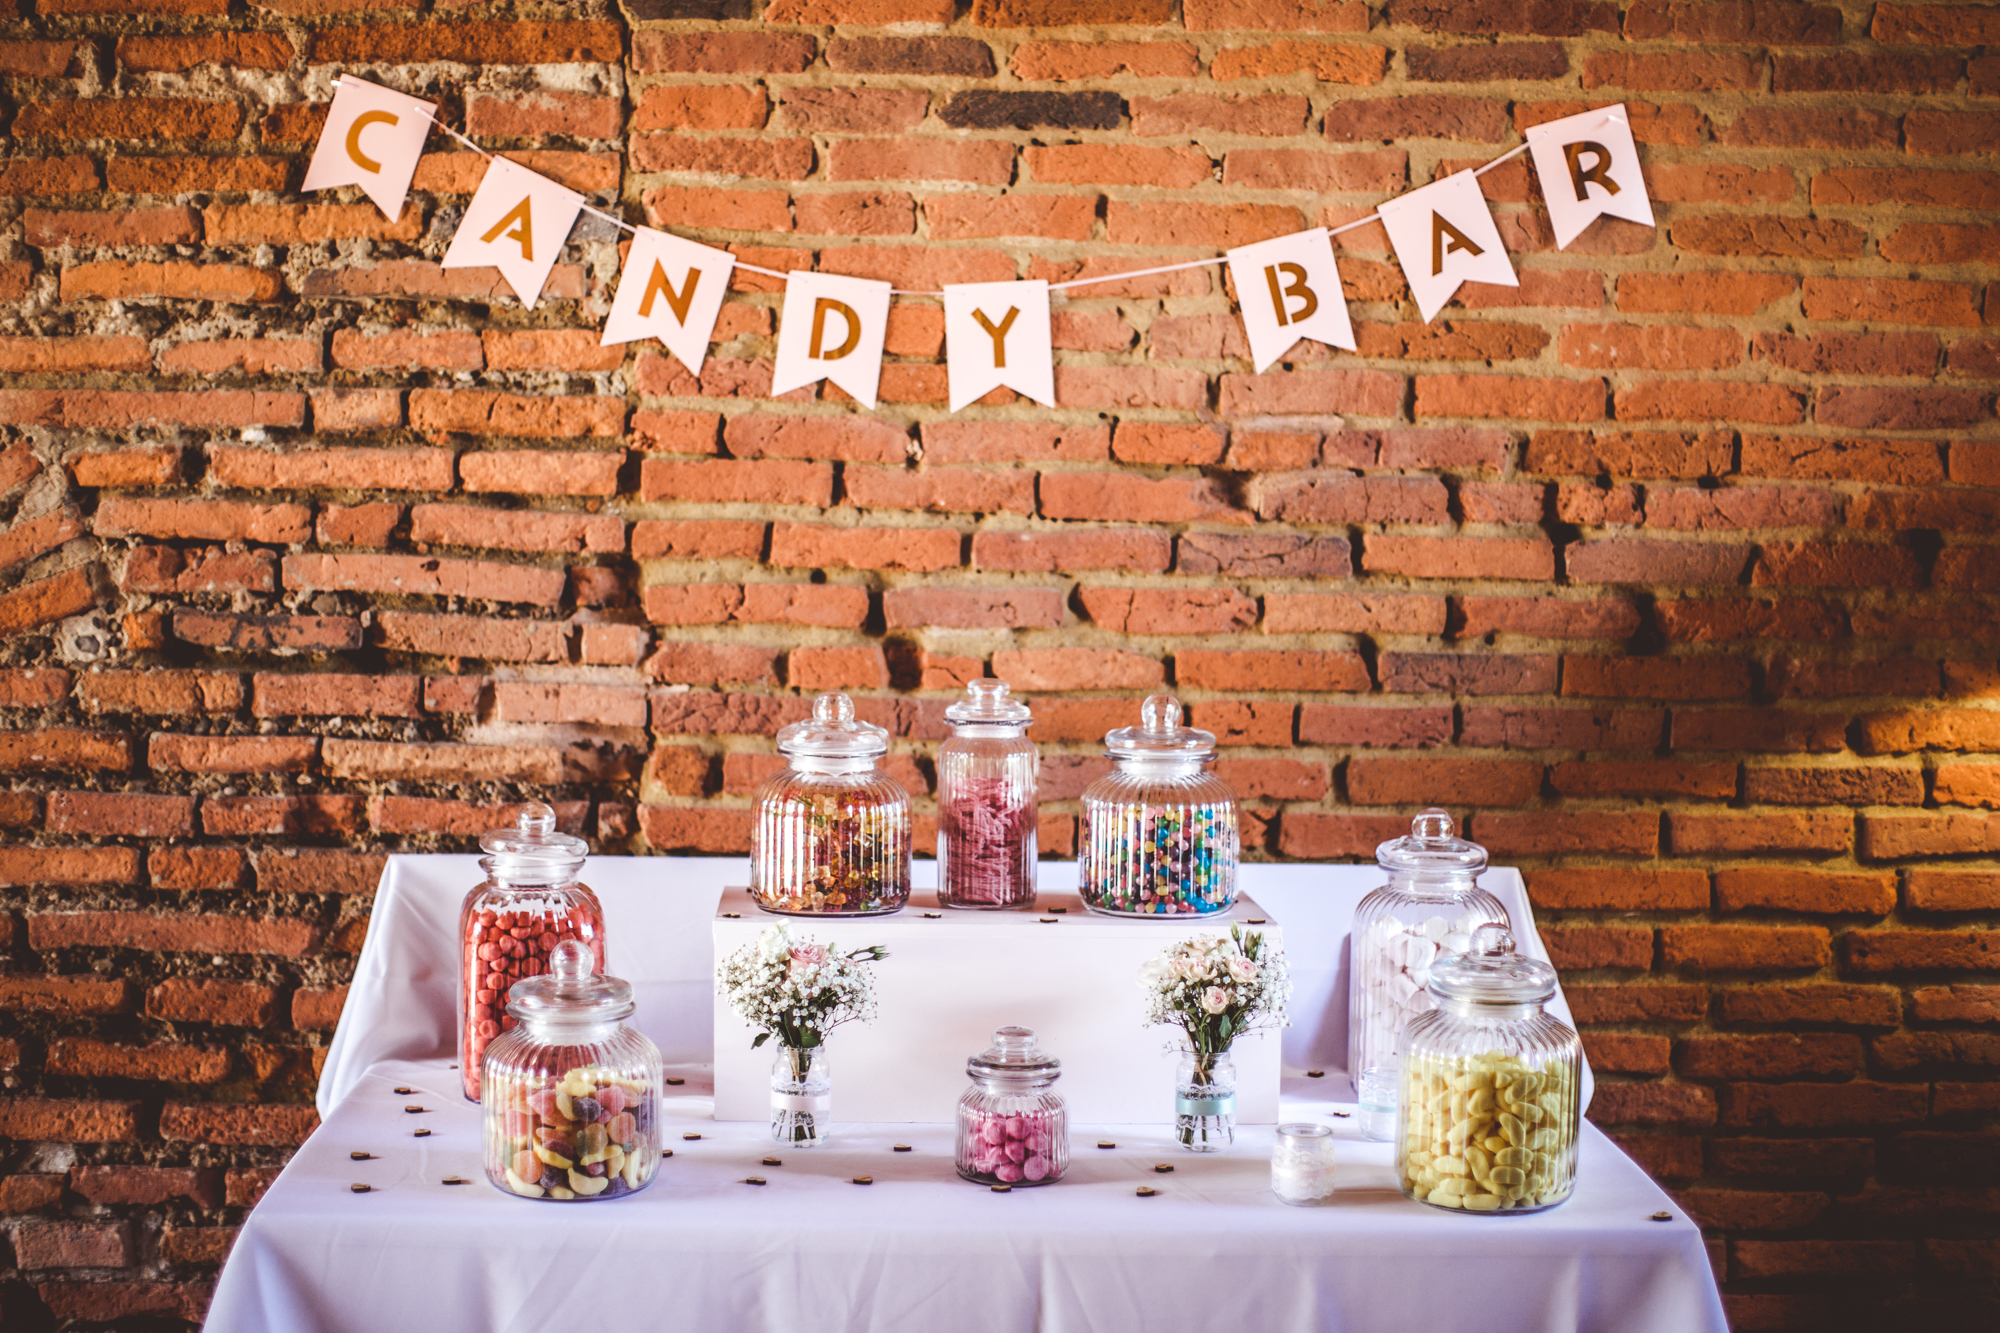 reportage mariage photo chateau launac decoration mariage brique orange toulouse fleurs table details cadeaux invites wedding day candy bar